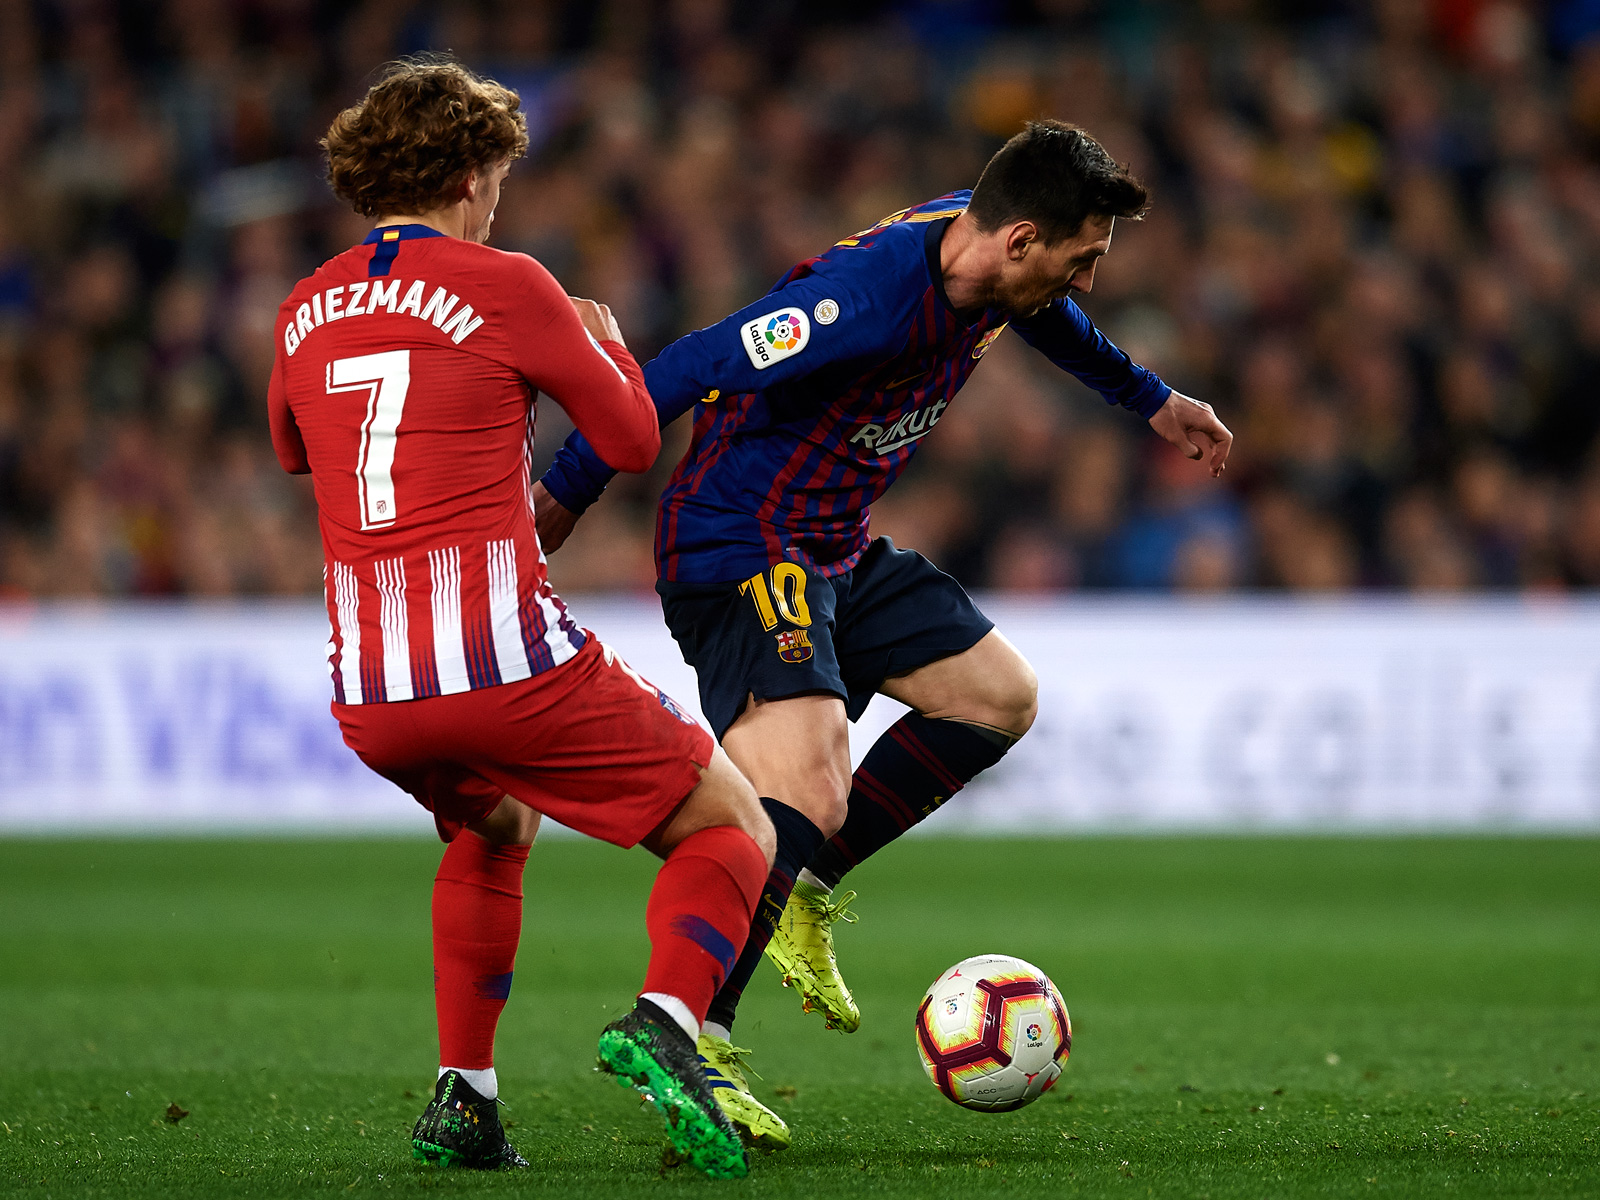 Antoine Griezmann is now teammates with Lionel Messi at Barcelona